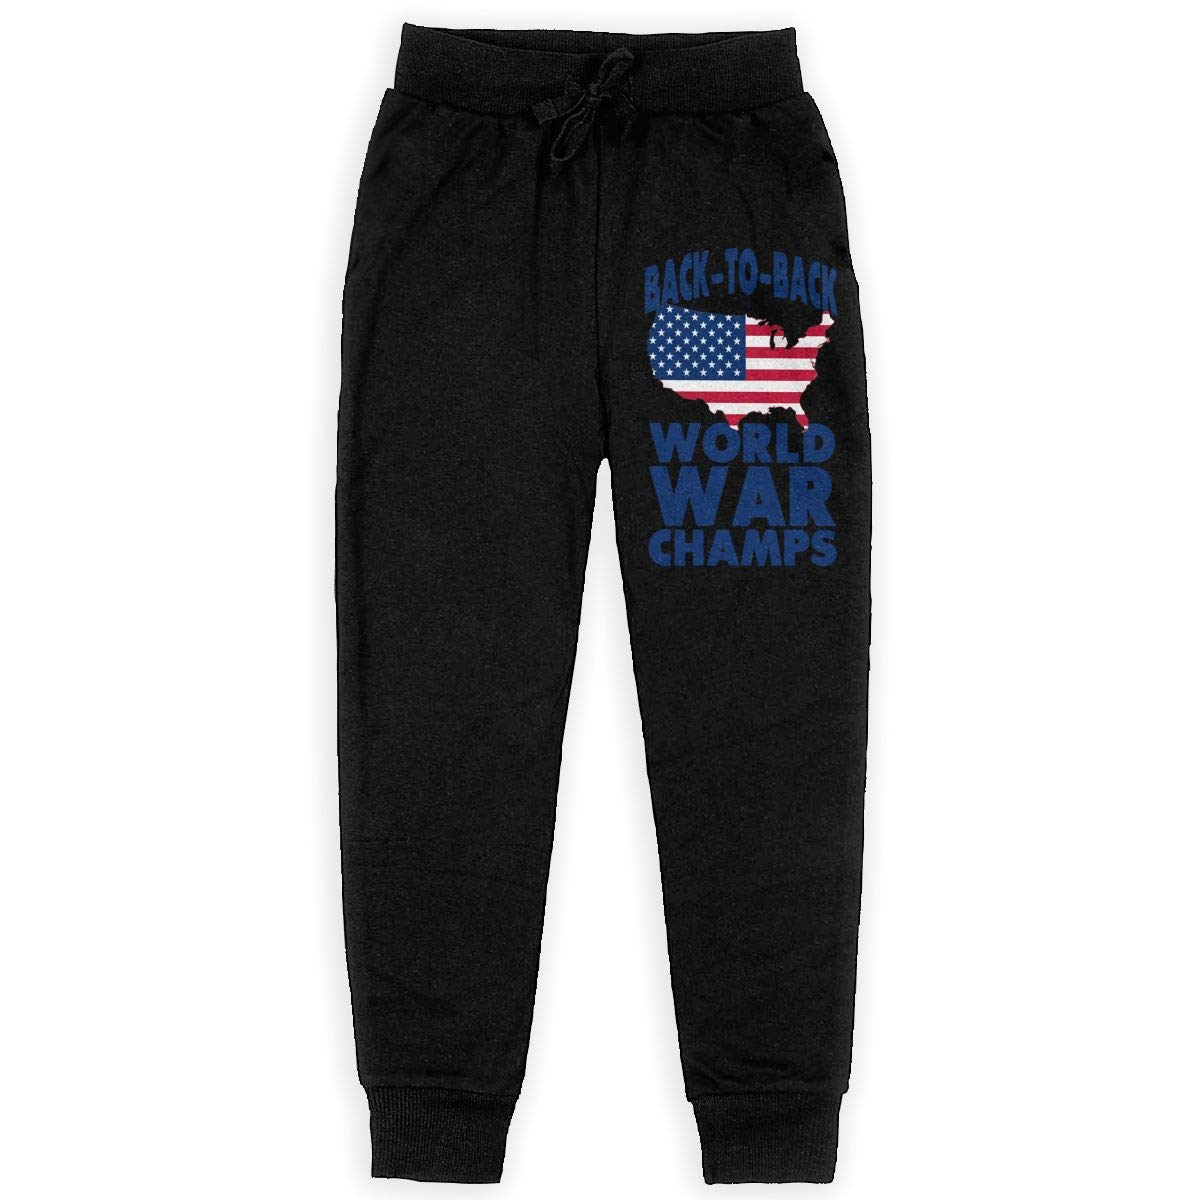 Boys Trousers Girls for Teen Boy Back to Back World War Champs Soft//Cozy Sweatpants